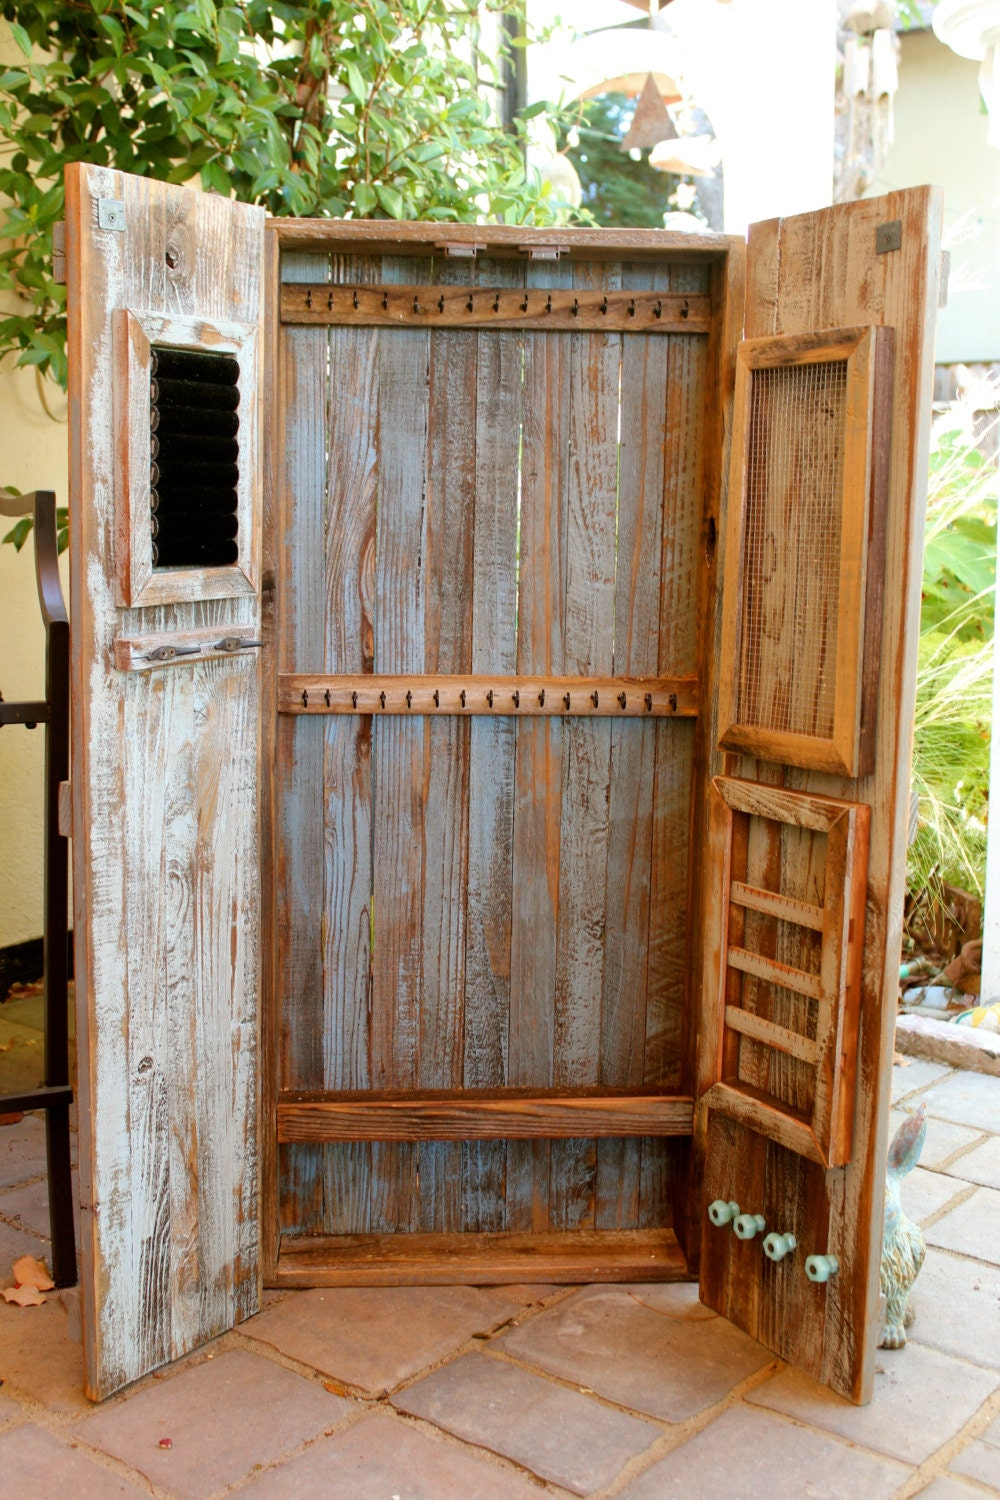 Armoire rustic home decor jewelry storage hanging - Armoire a bijoux murale ...